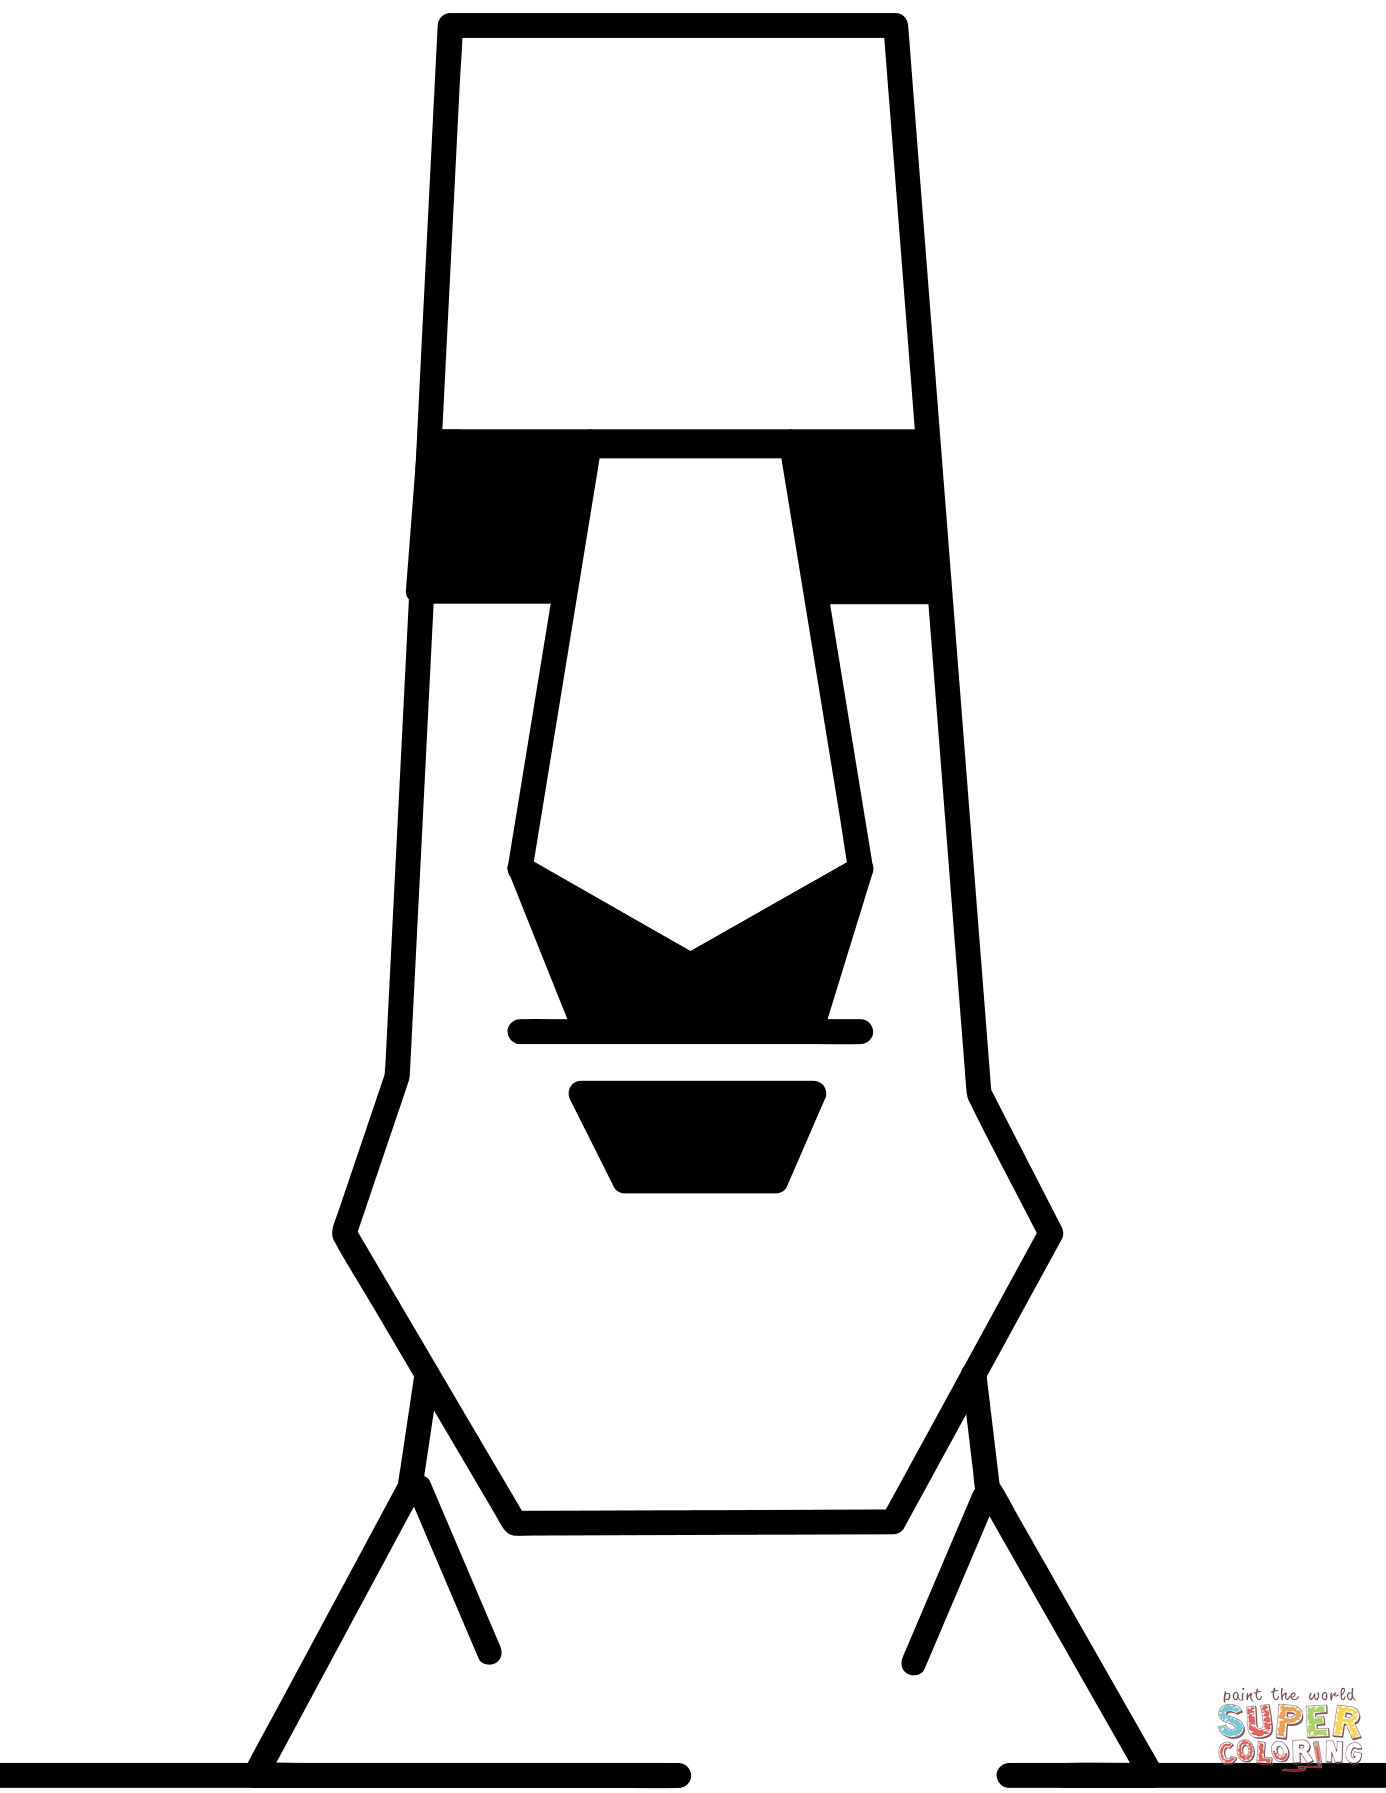 Easter Island Moai Statue coloring page.